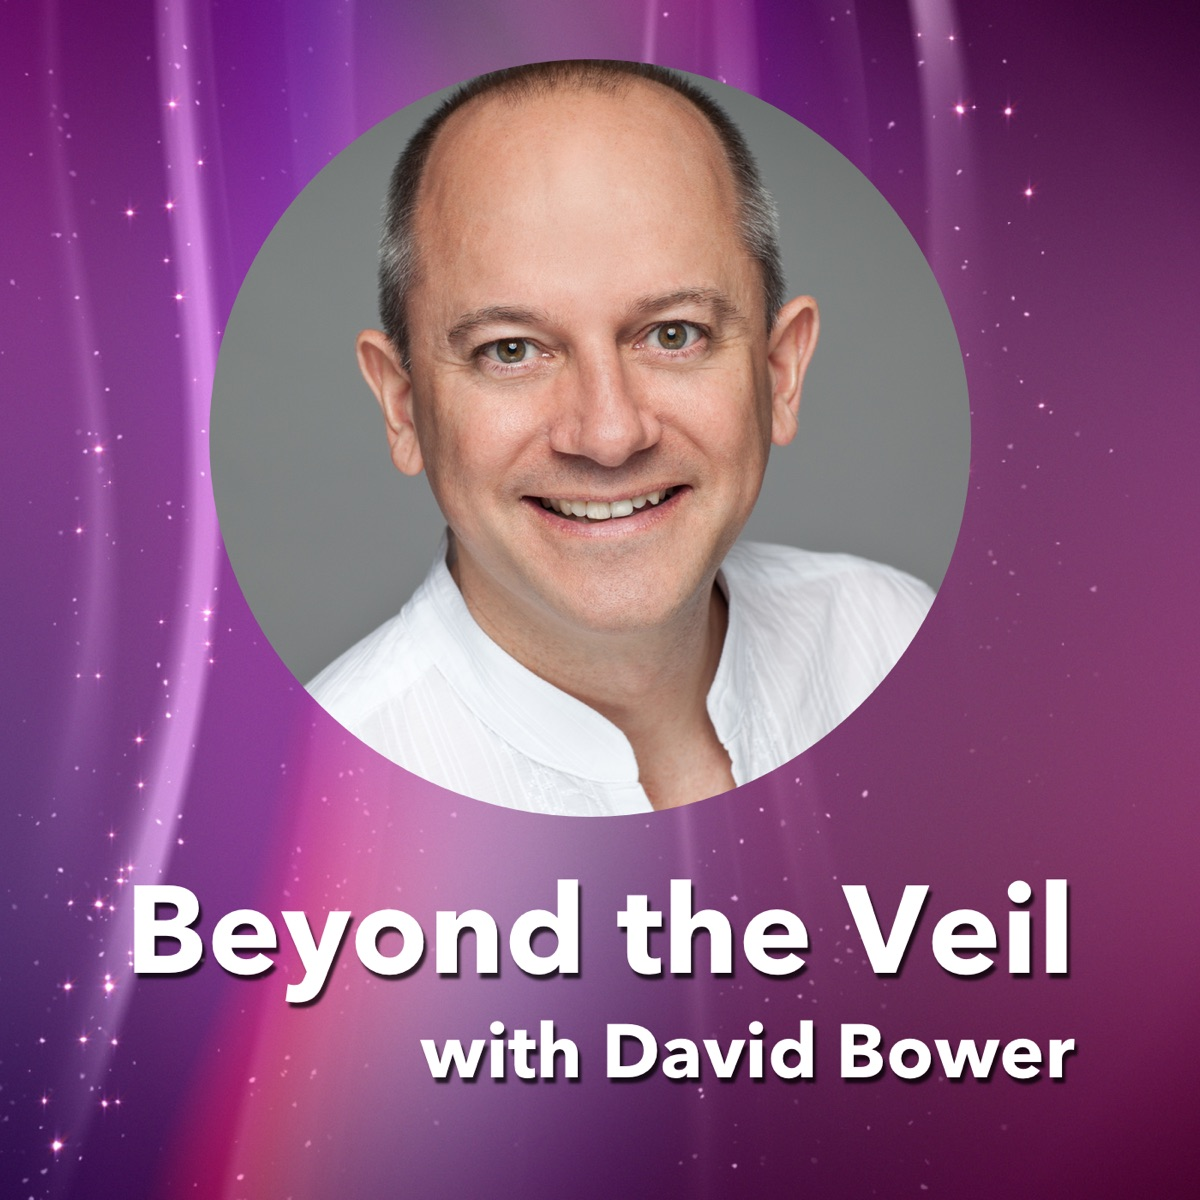 Beyond the Veil with David Bower